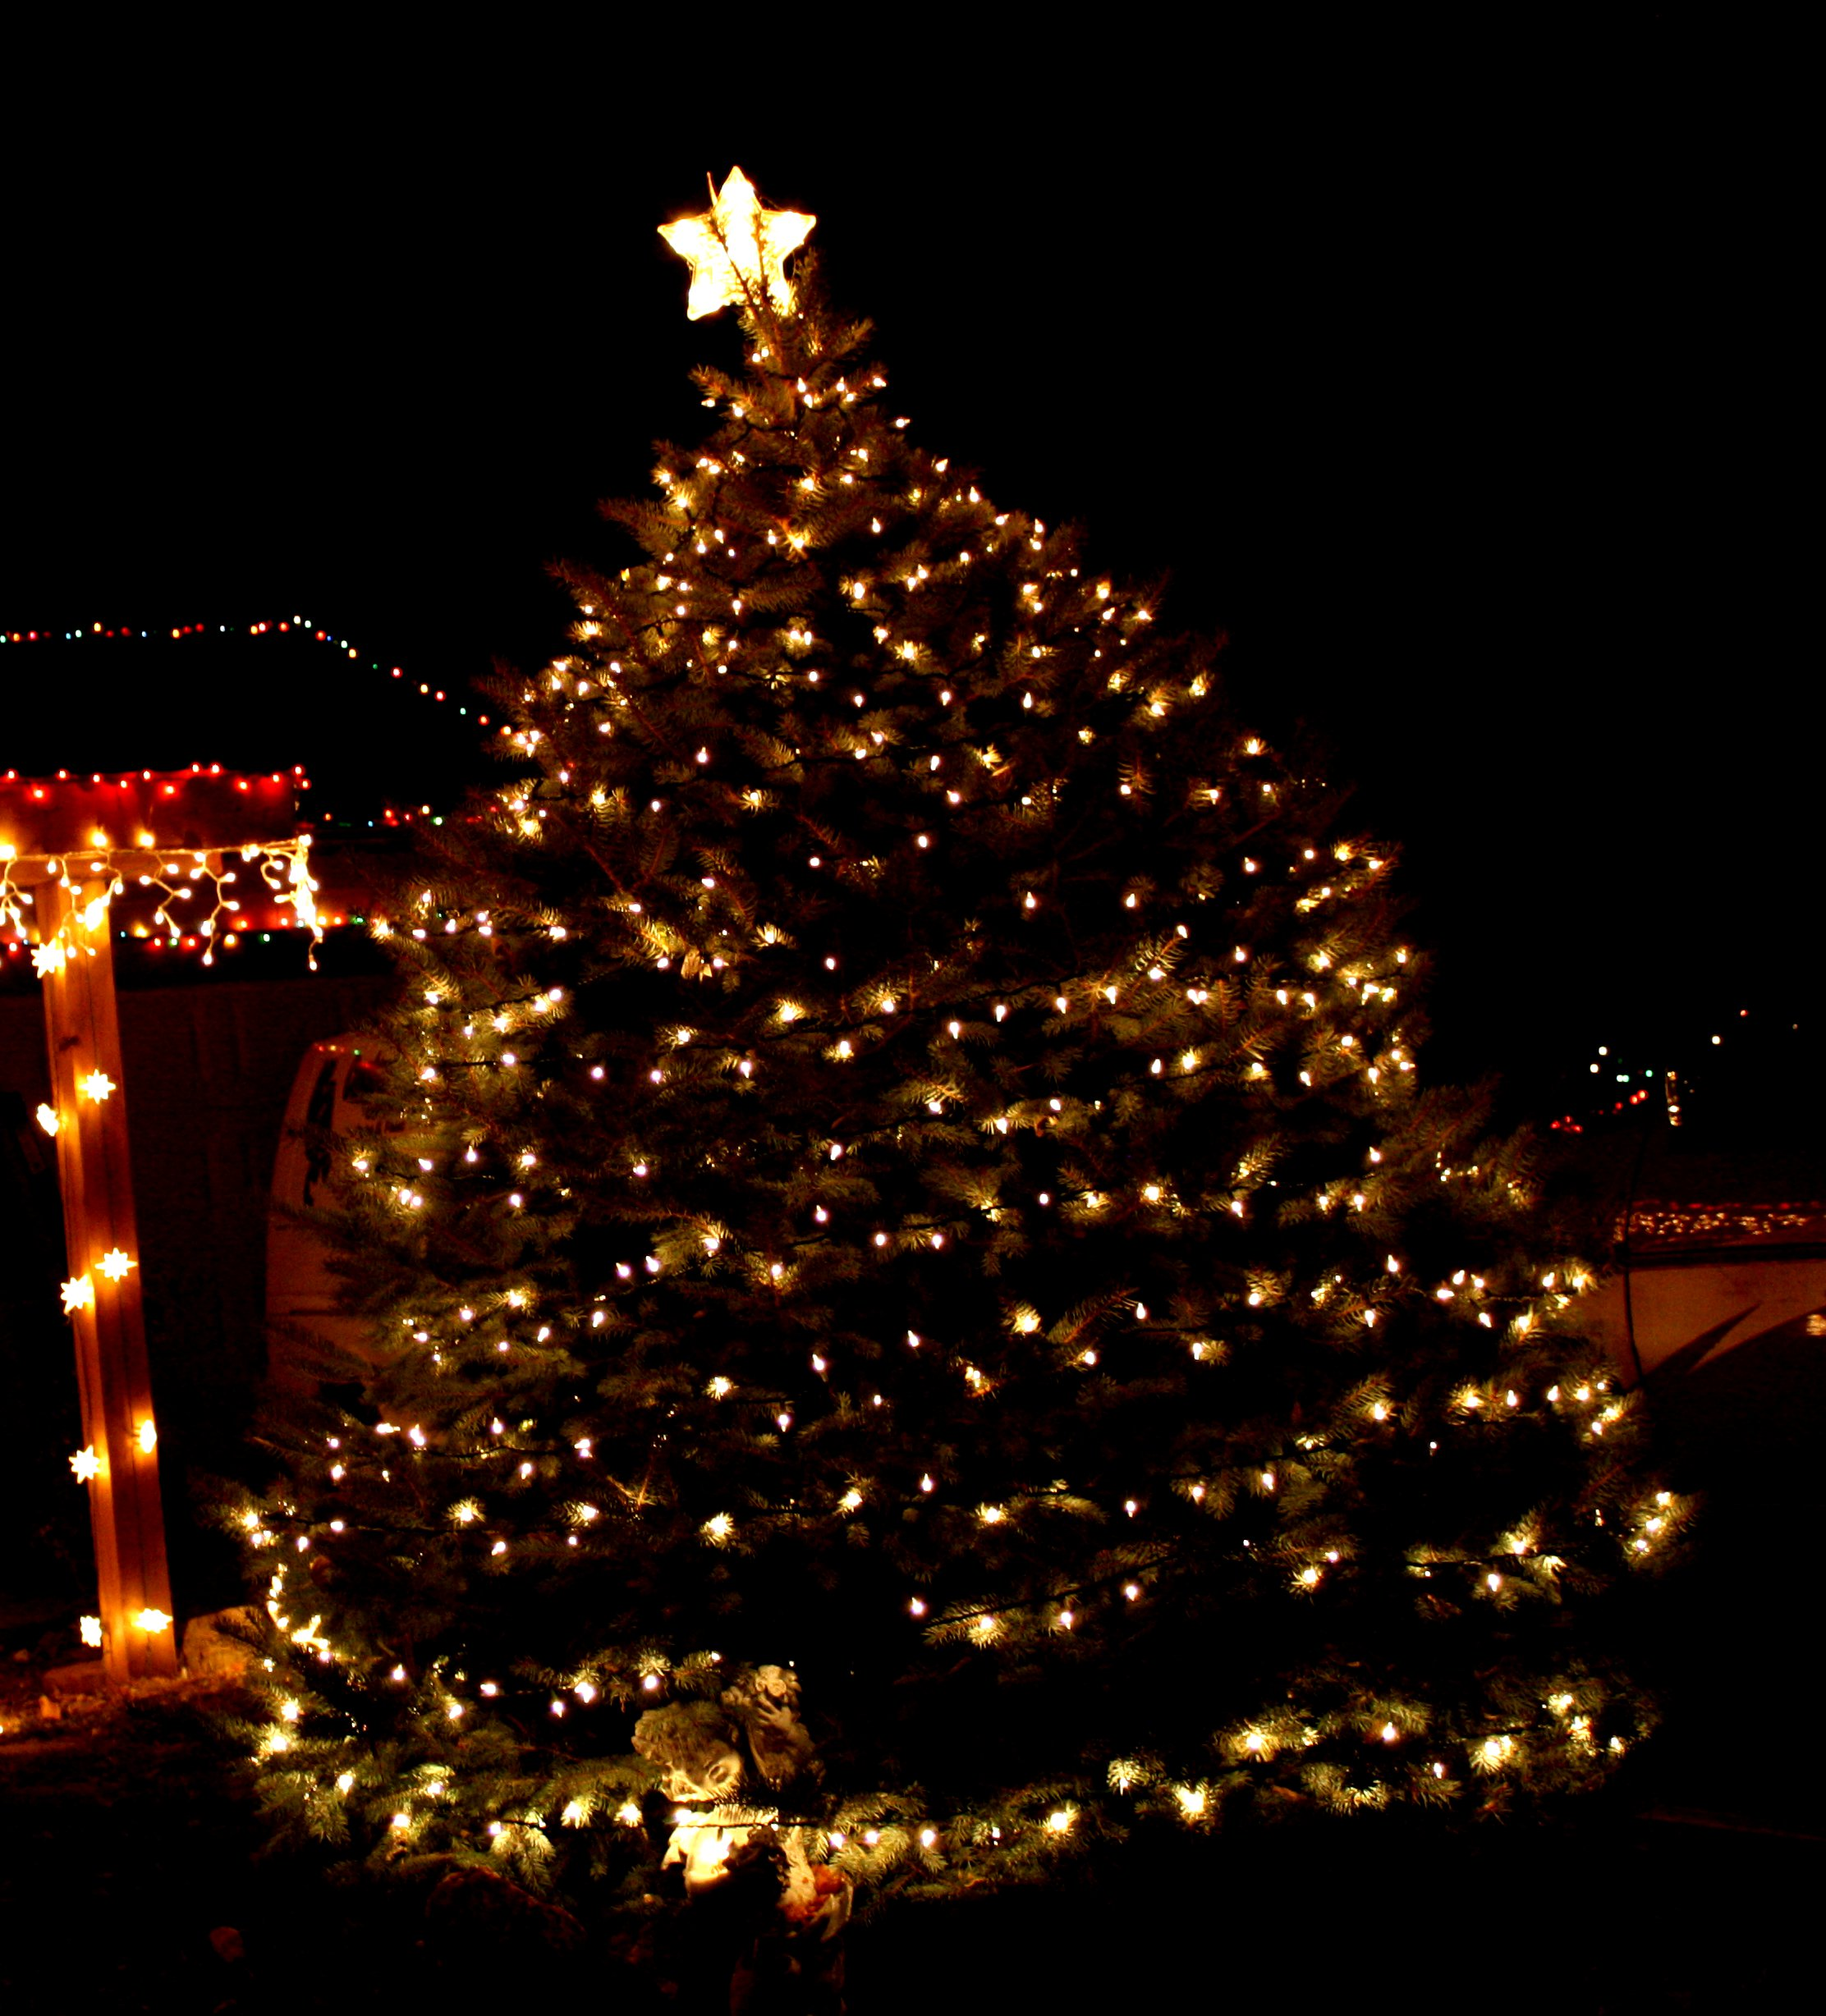 Christmas Tree With White Lights Picture